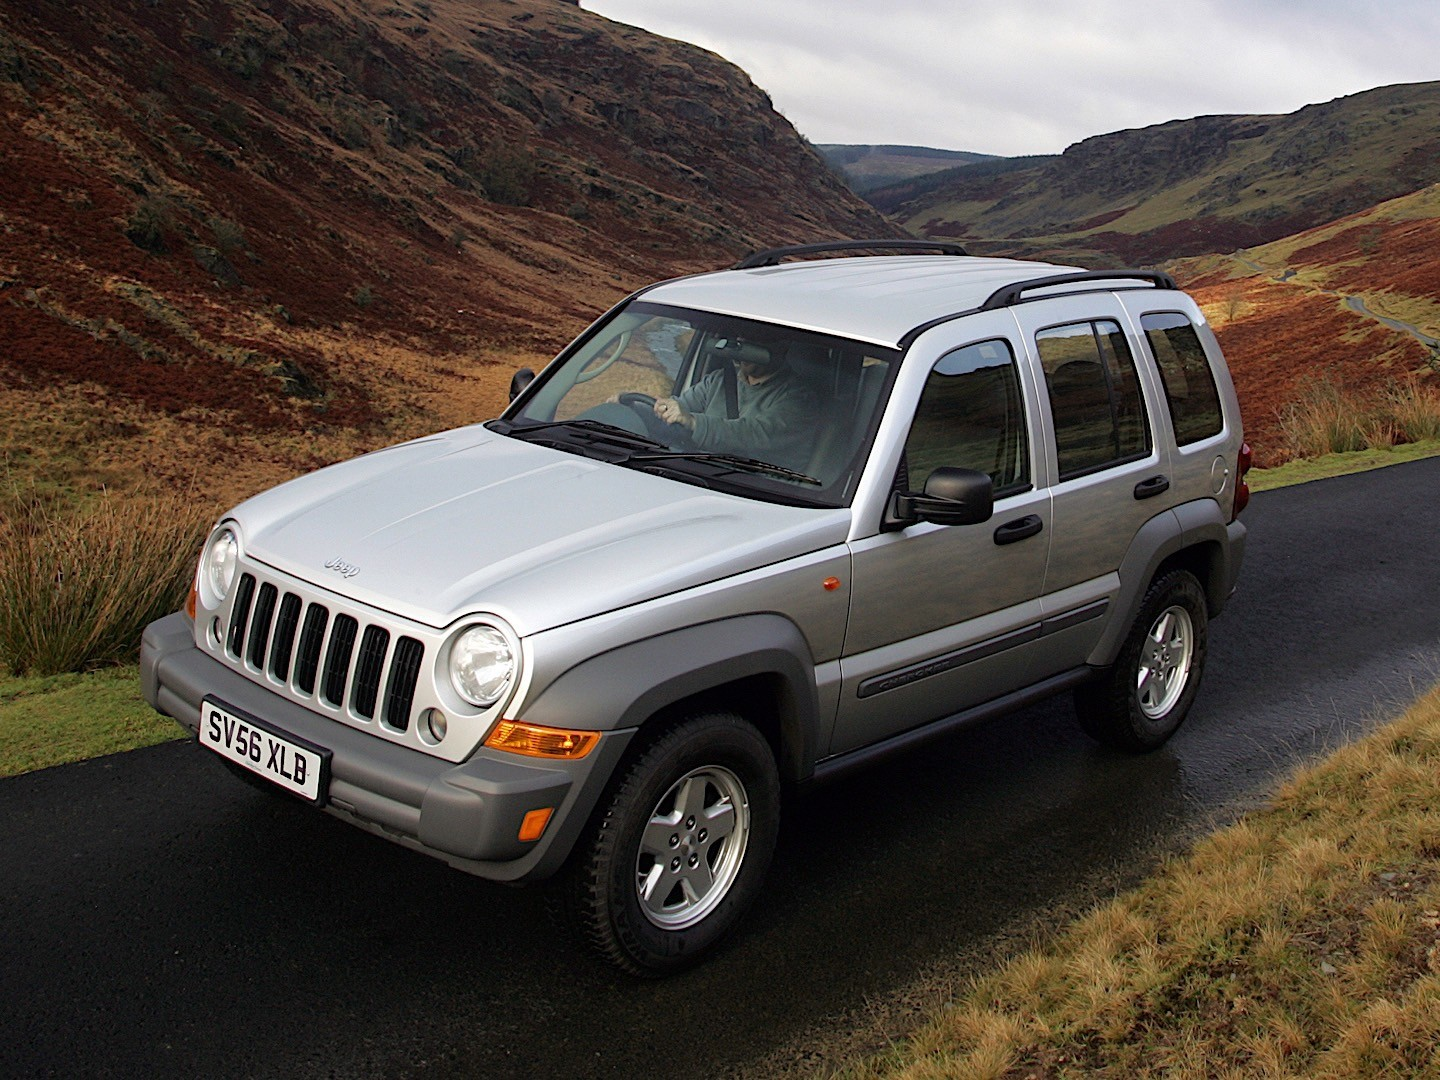 jeep cherokee liberty specs 2005 2006 2007 autoevolution. Black Bedroom Furniture Sets. Home Design Ideas